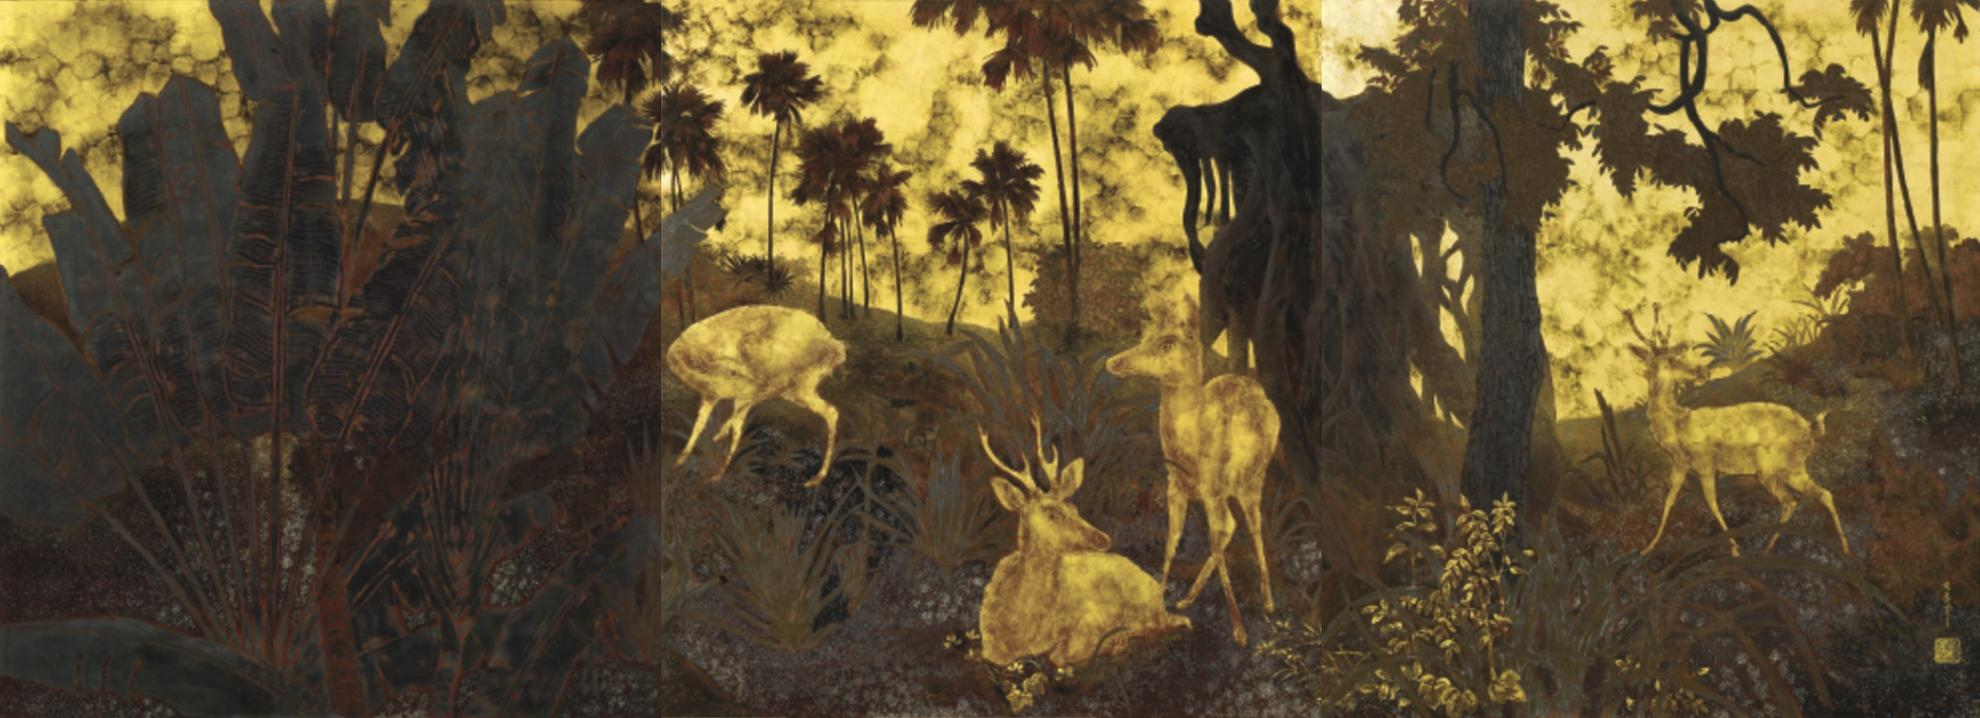 Pham Hau-A Family Of Deer In A Forest-